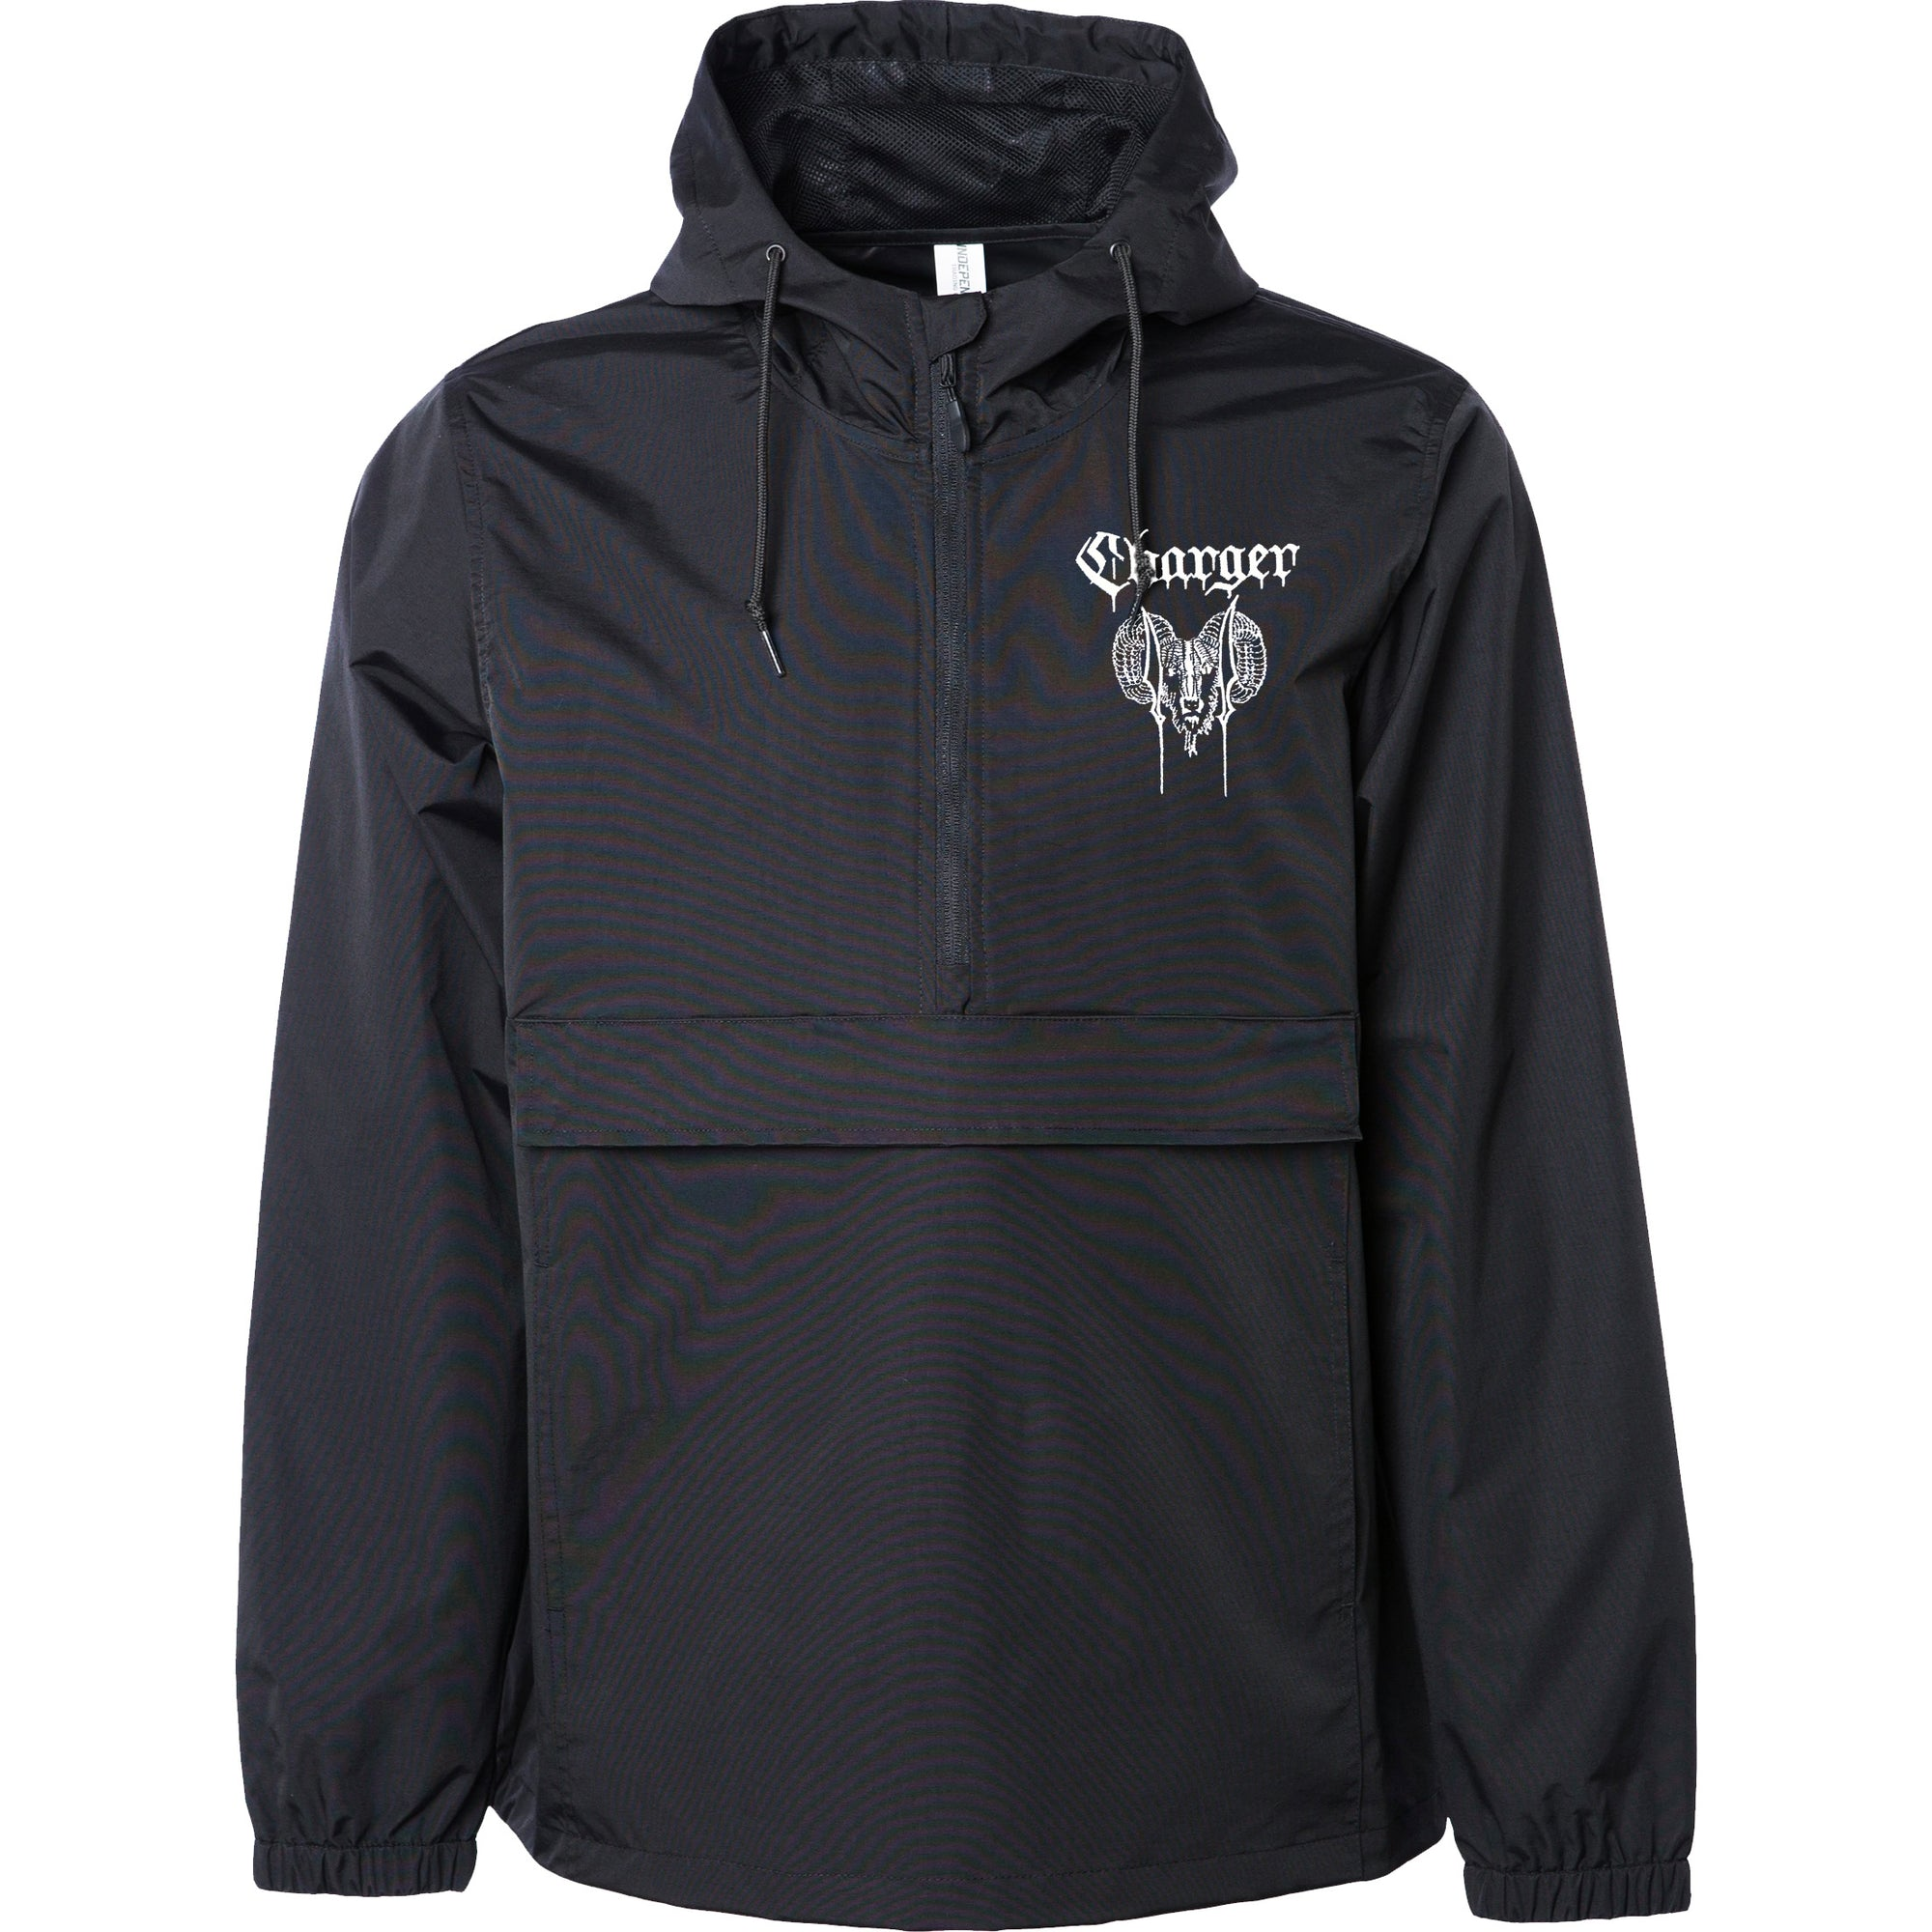 Charger - Ram - Windbreaker Jacket - Black